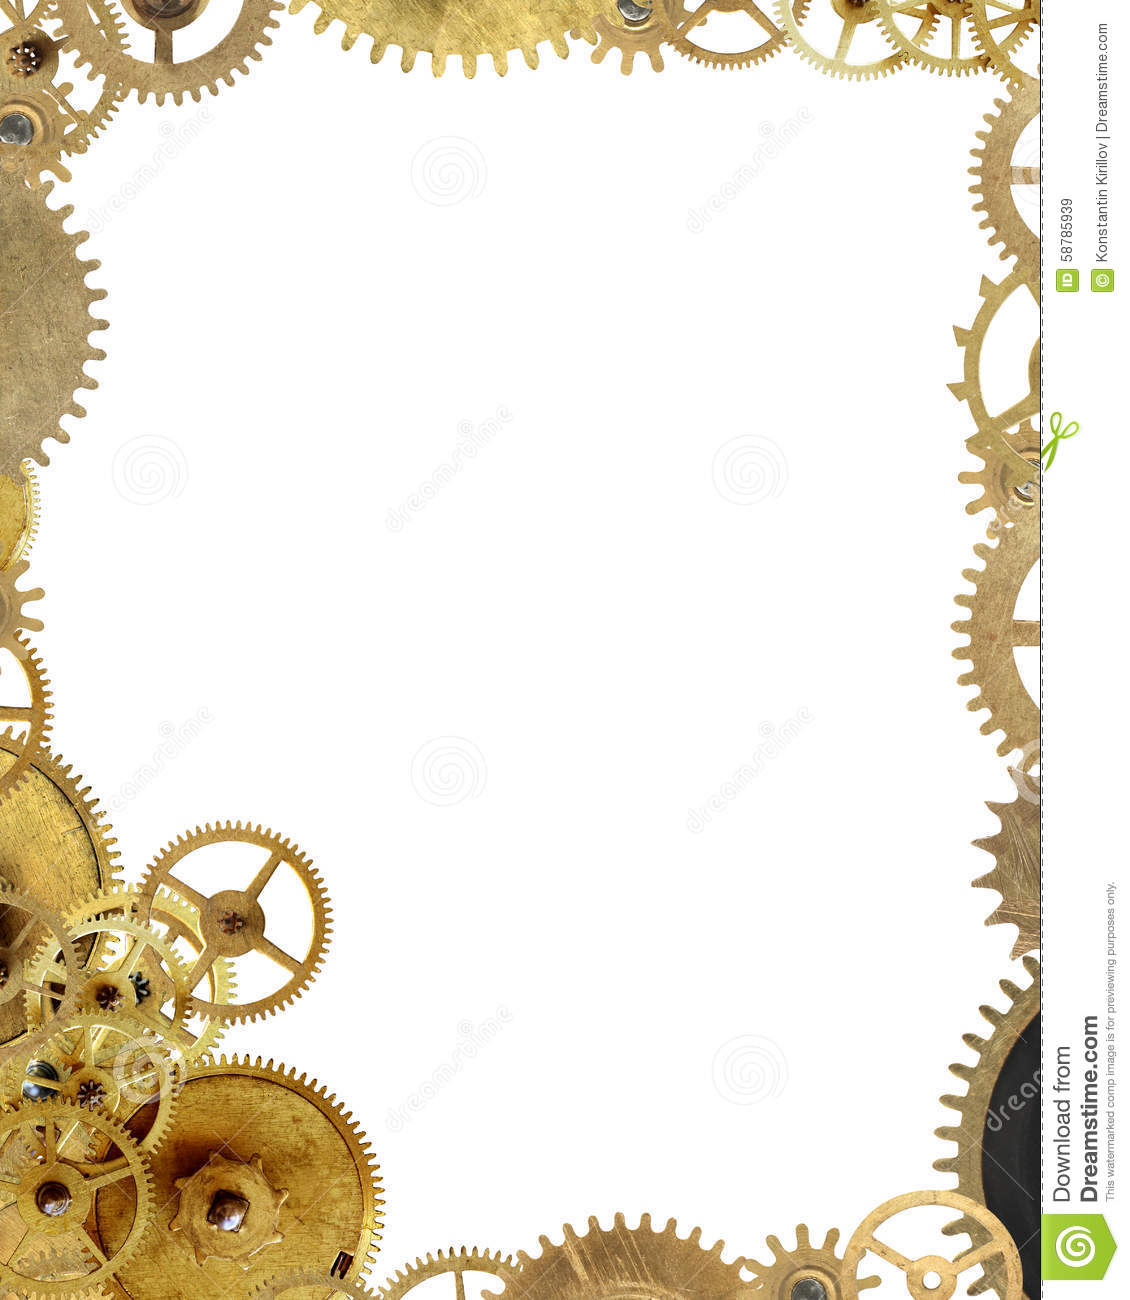 Machinery concept. Picture frame made from lot of various gears